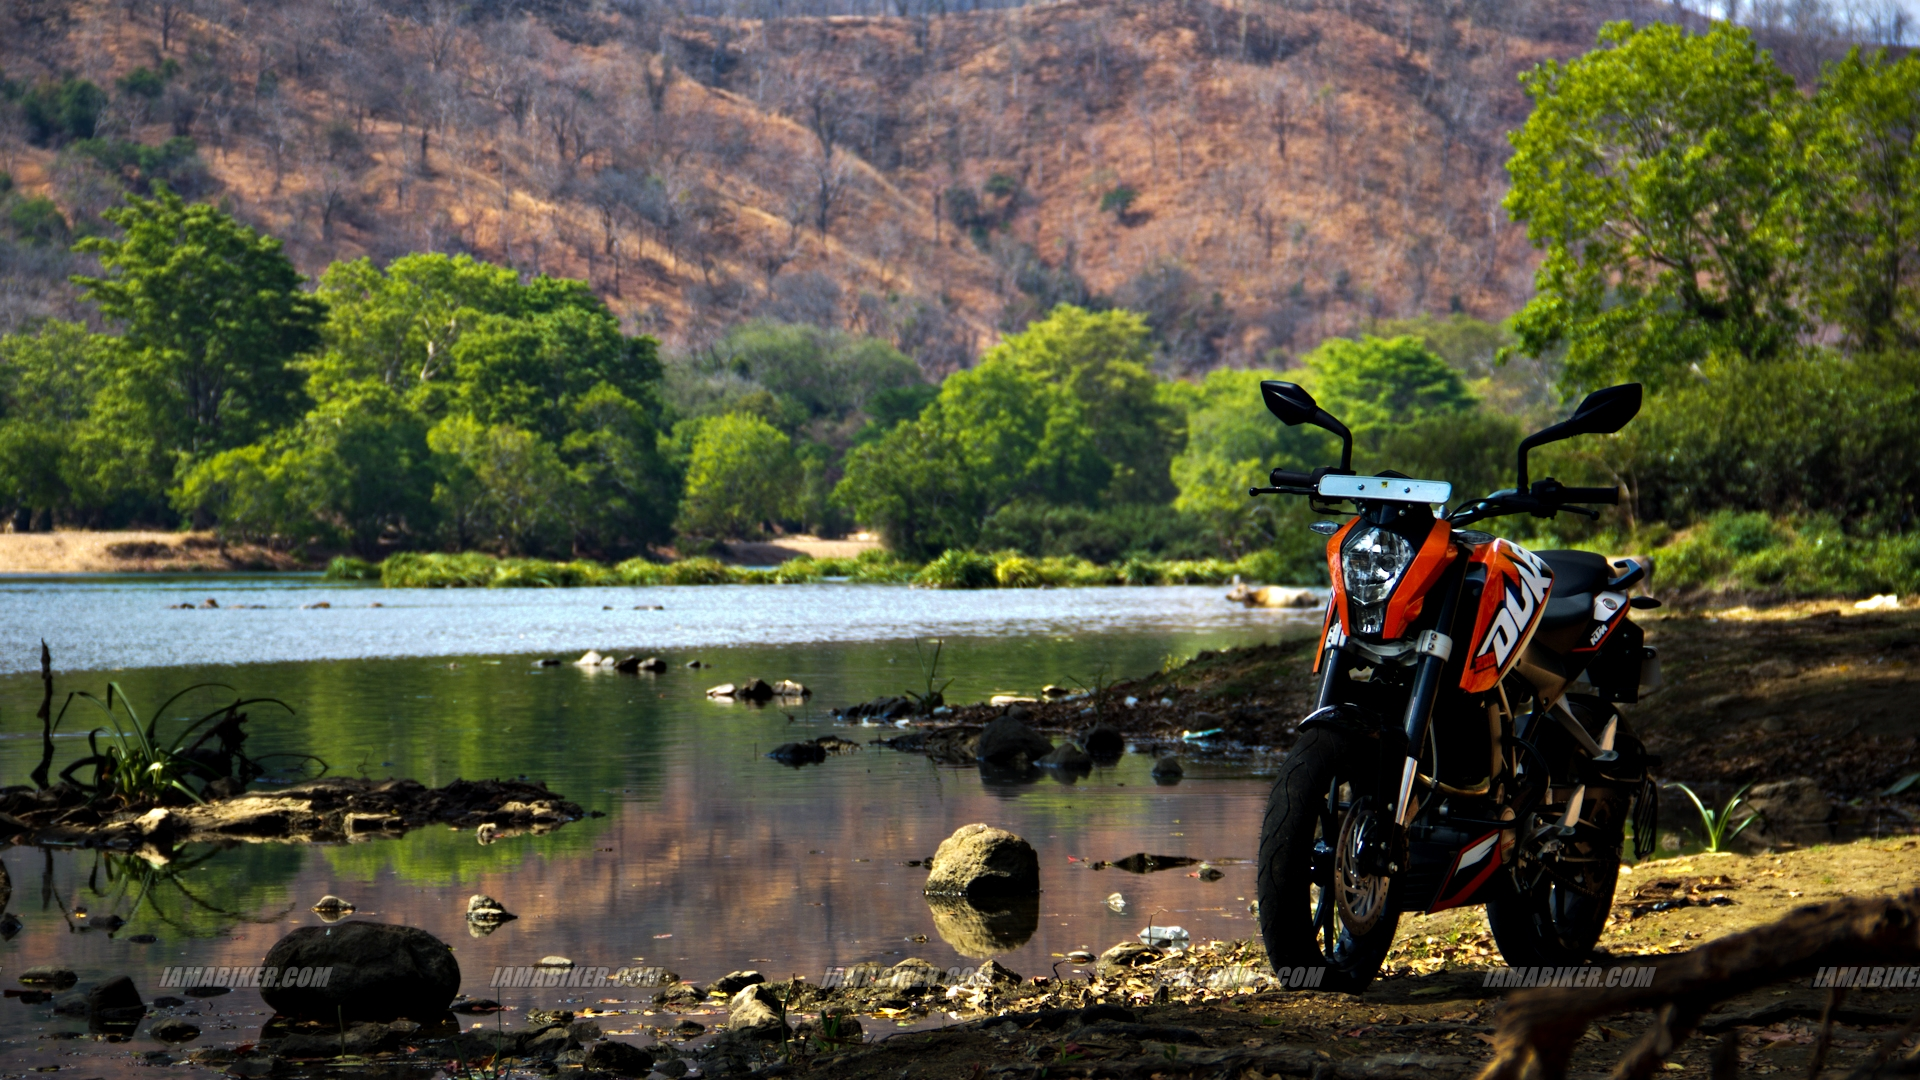 Ktm Duke 200 Hd Wallpapers Download For Android Trackerbrown